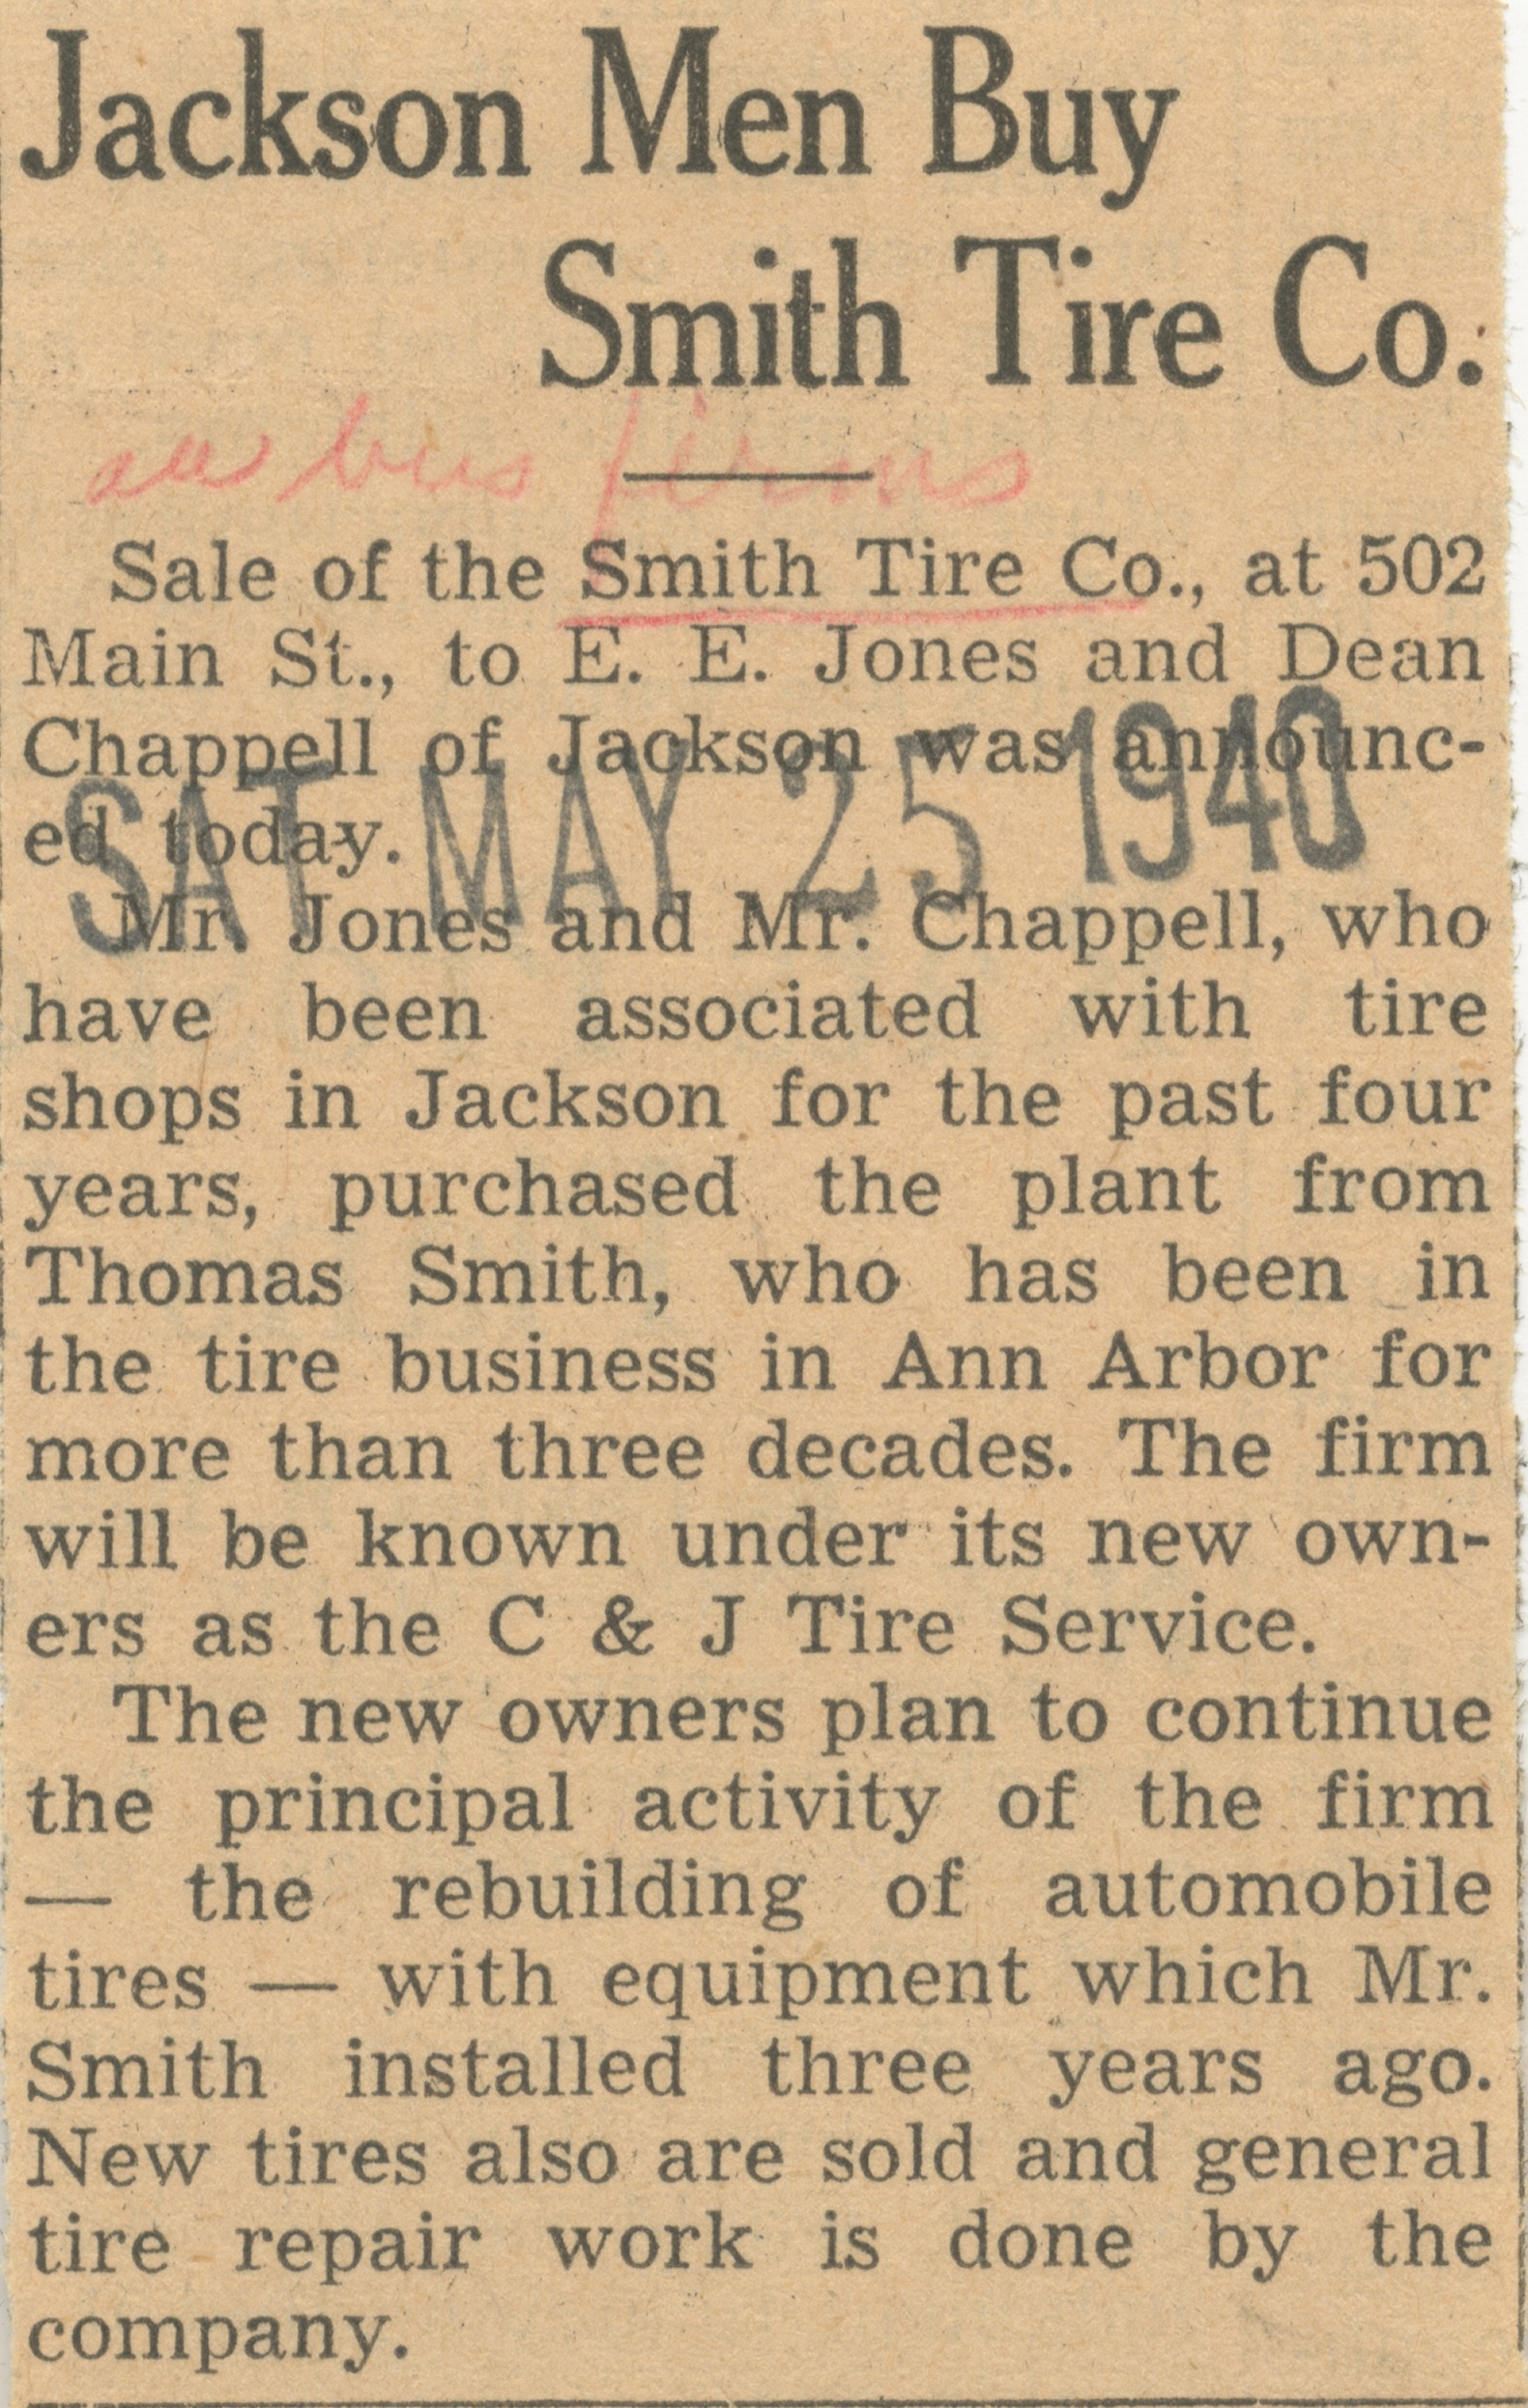 Jackson Men Buy Smith Tire Co. image